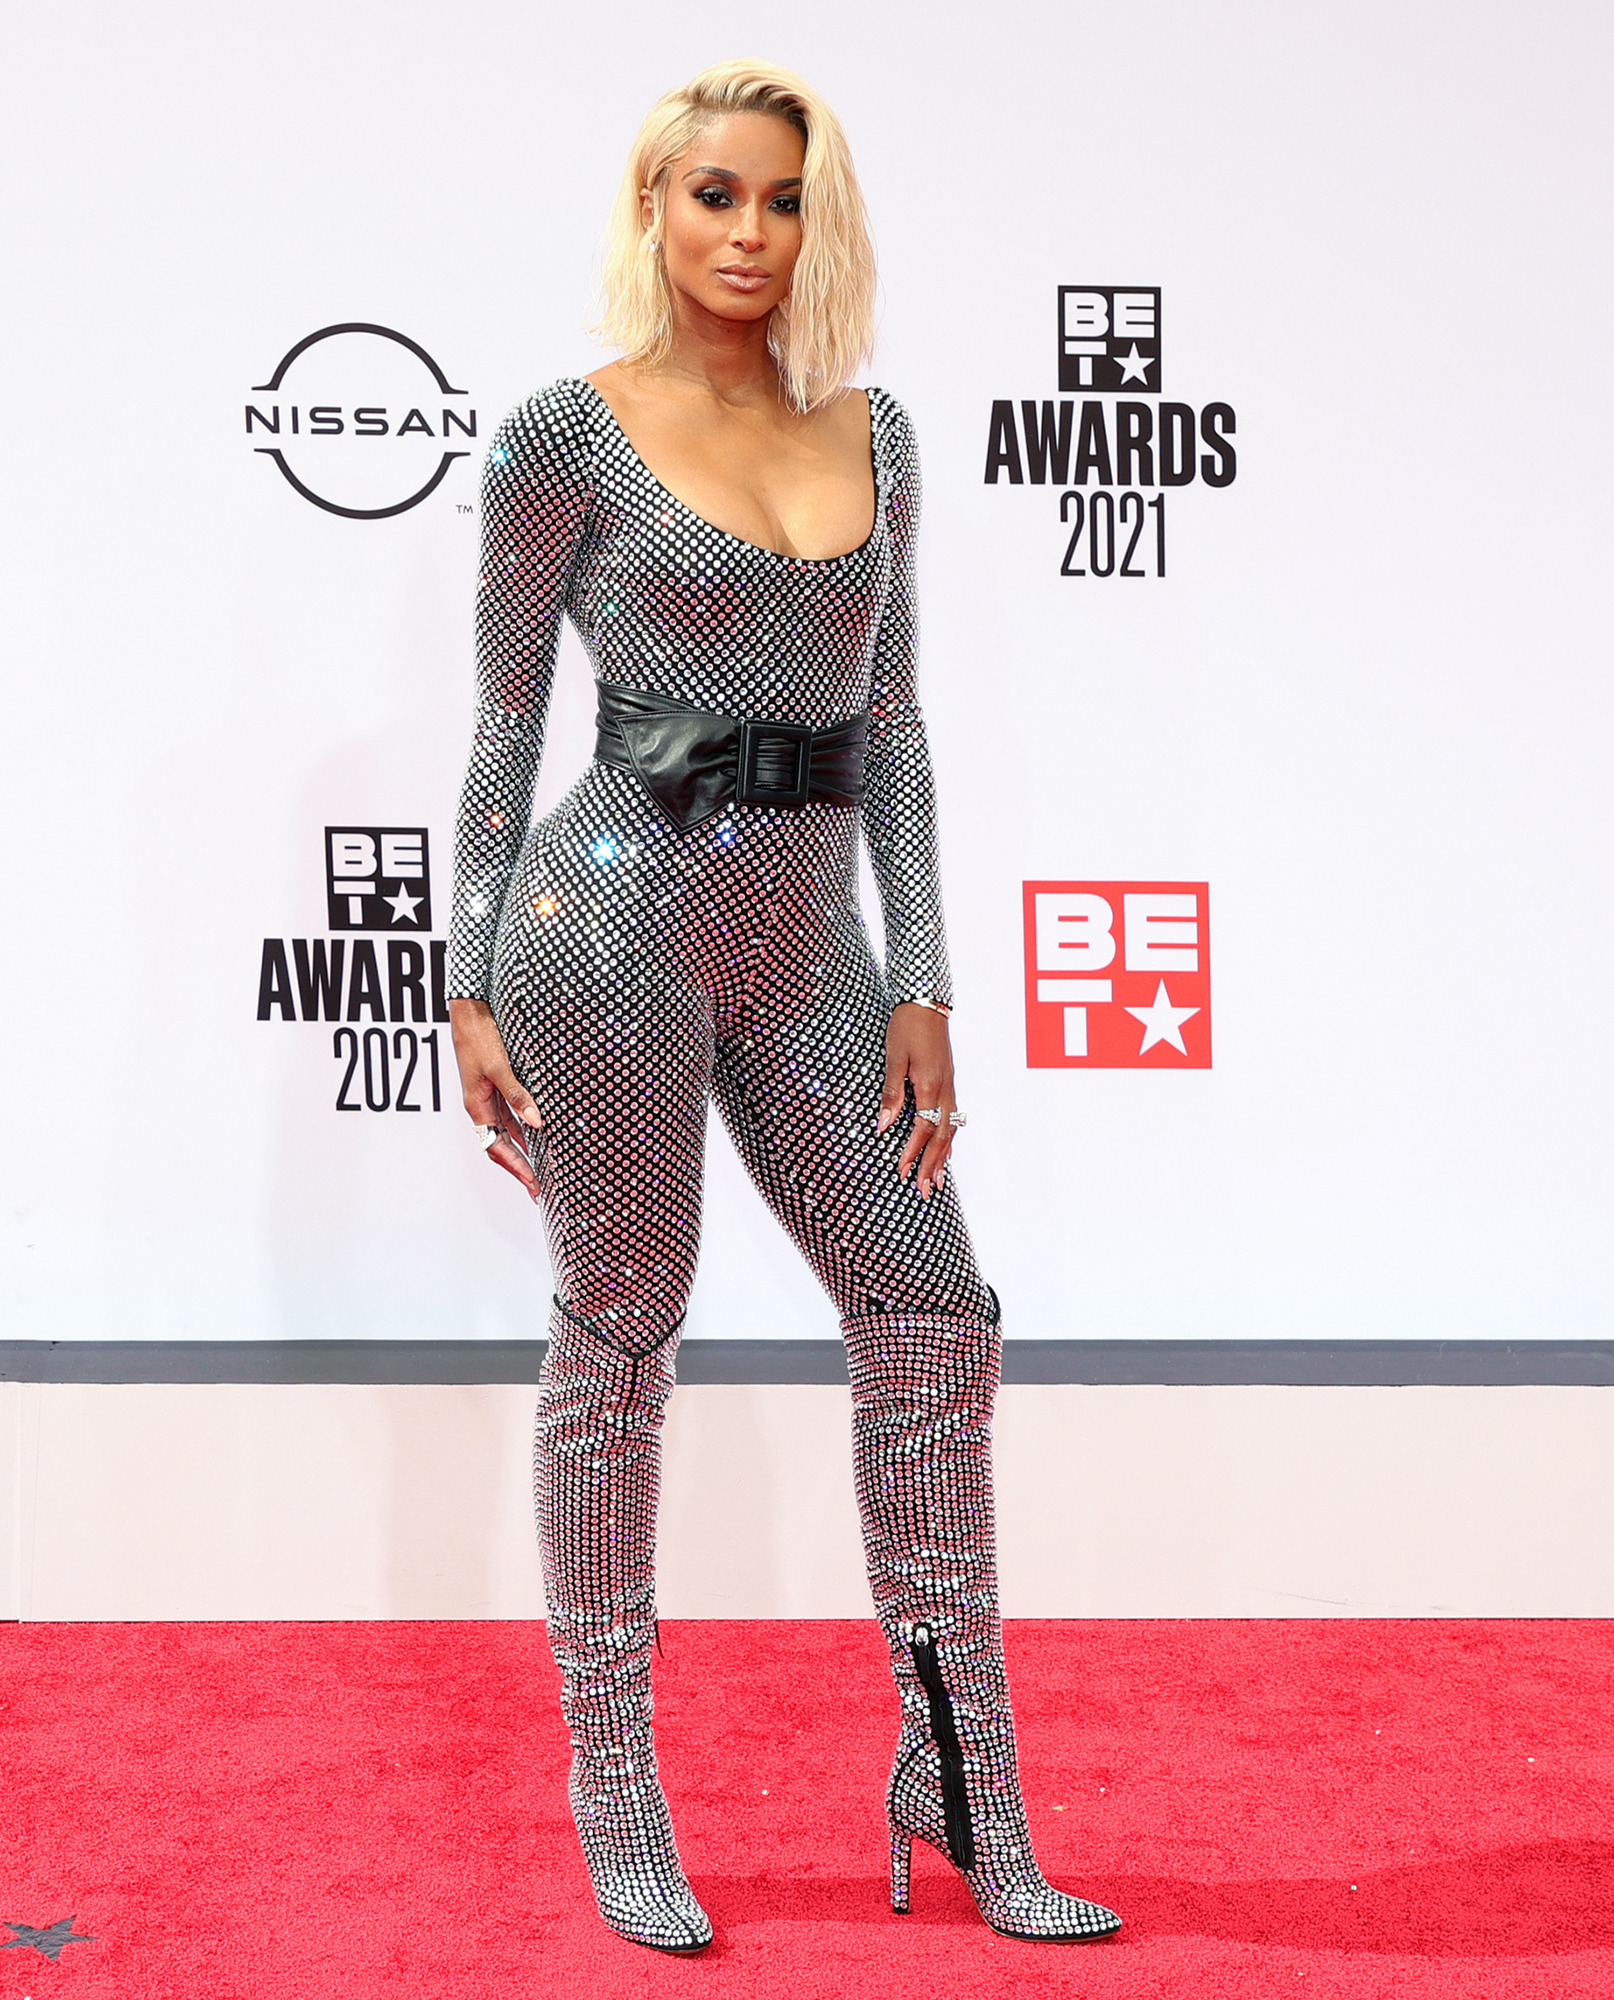 Ciara attends the BET Awards 2021